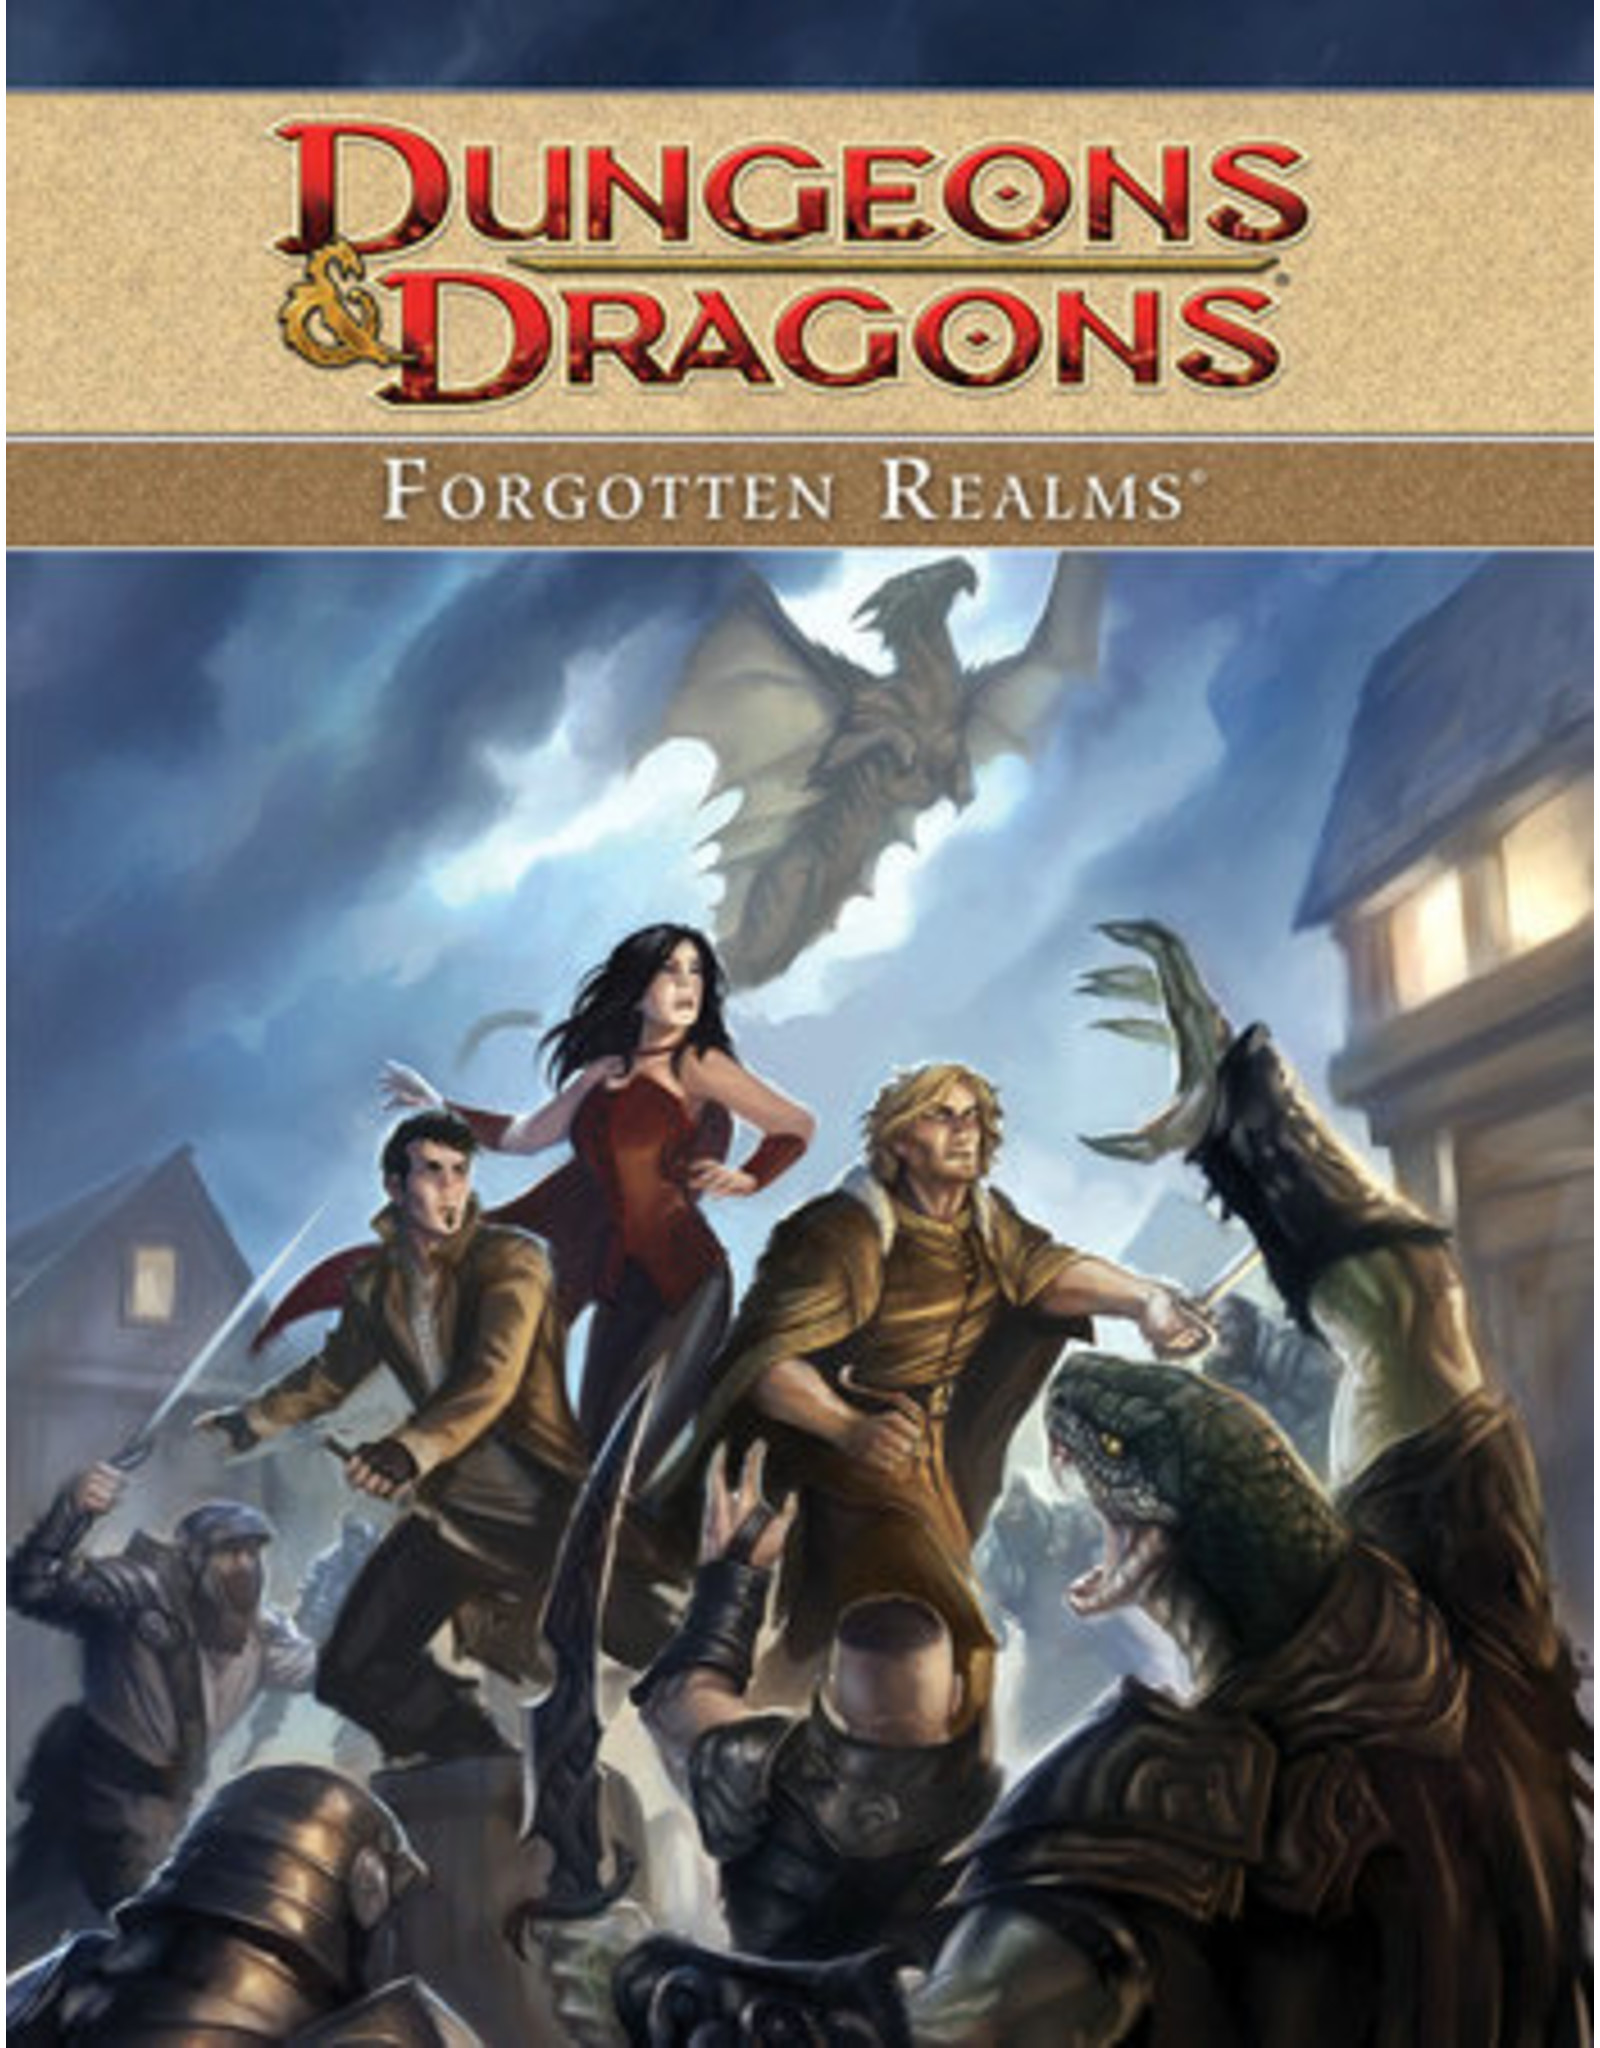 Dungeons & Dragons: Forgotten Realms (Ed Greenwood)